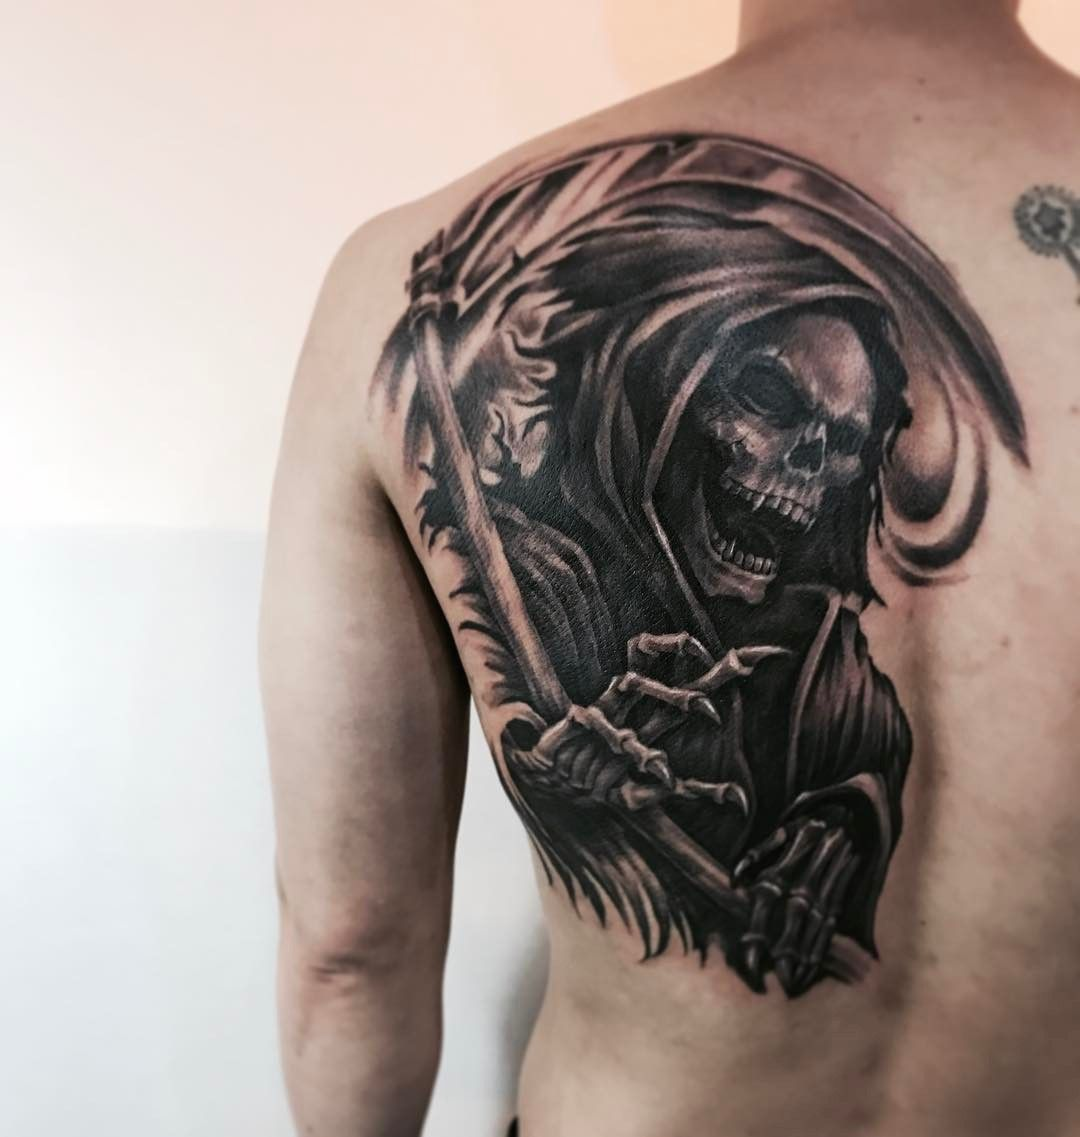 75 Horrible Grim Reaper Tattoo Designs & Meanings Check